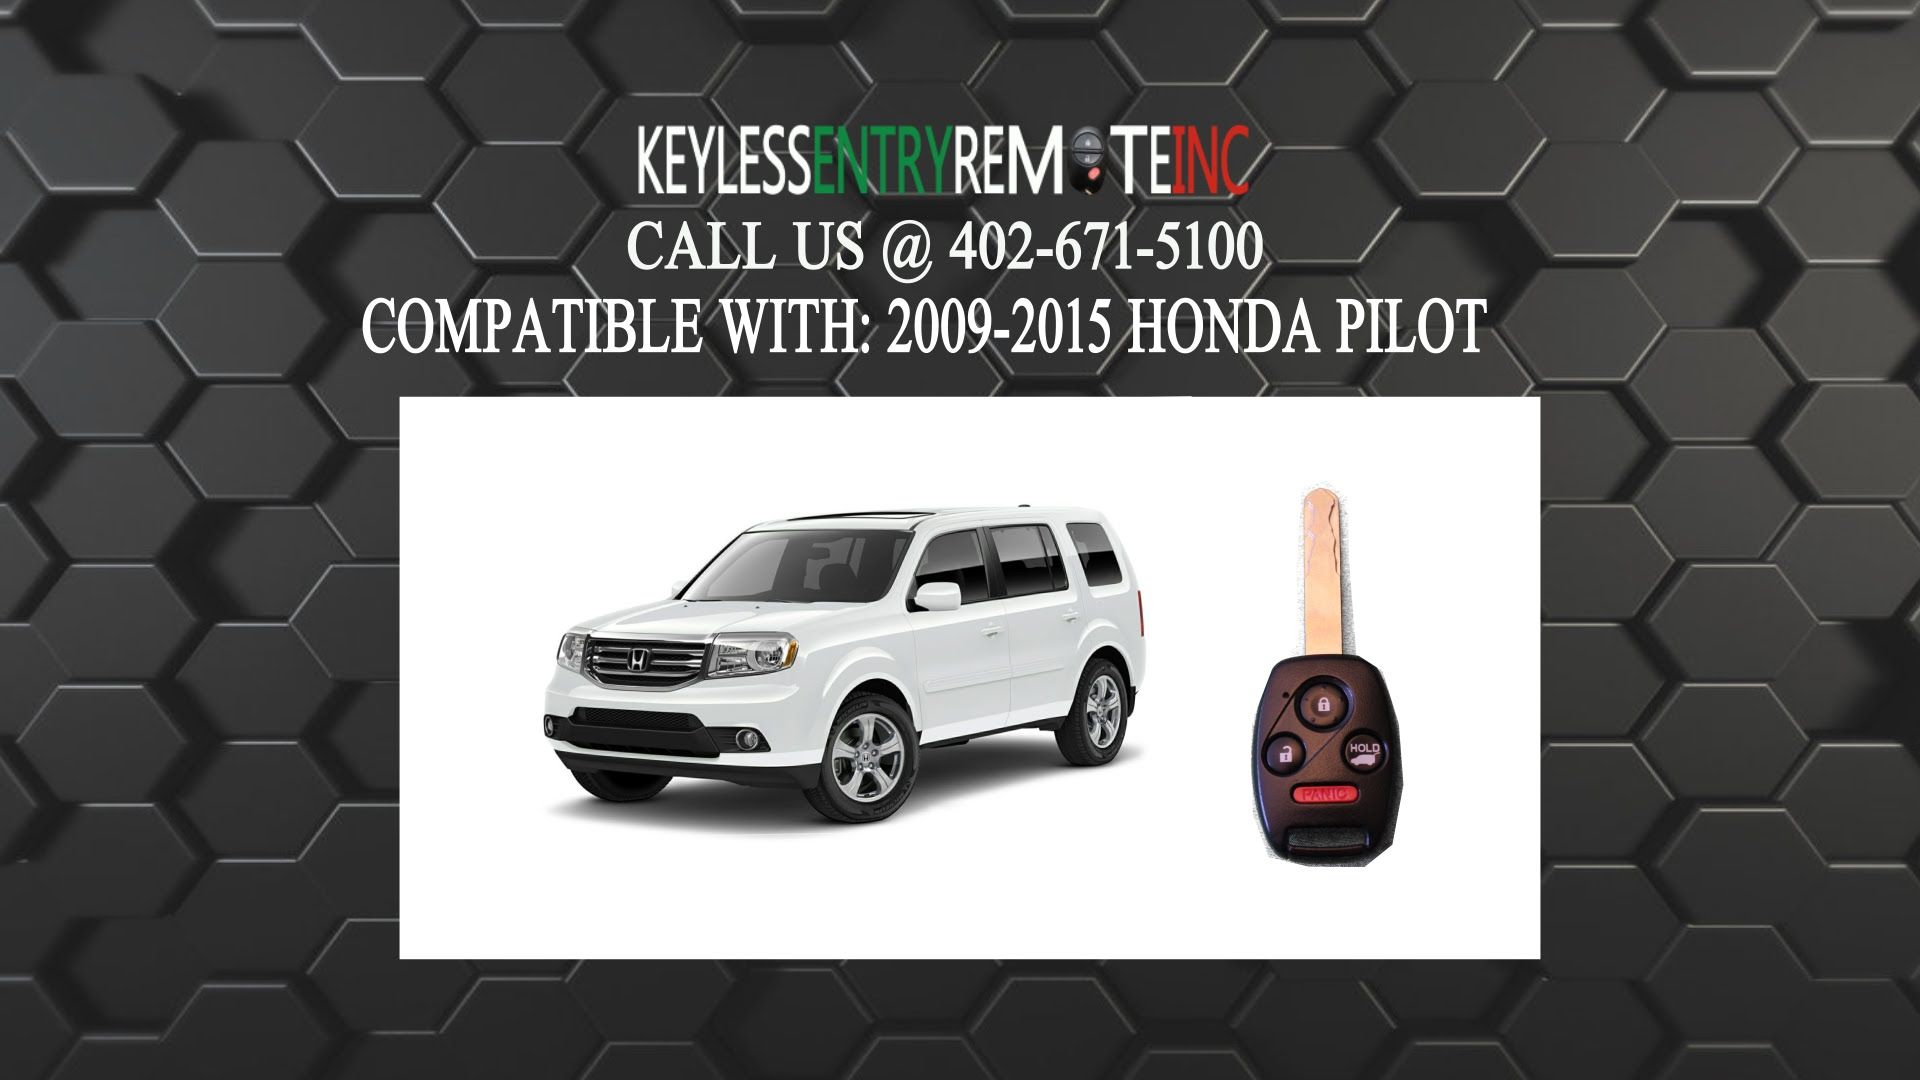 How To Replace Honda Pilot Key Fob Battery 2009 2010 2011 2012